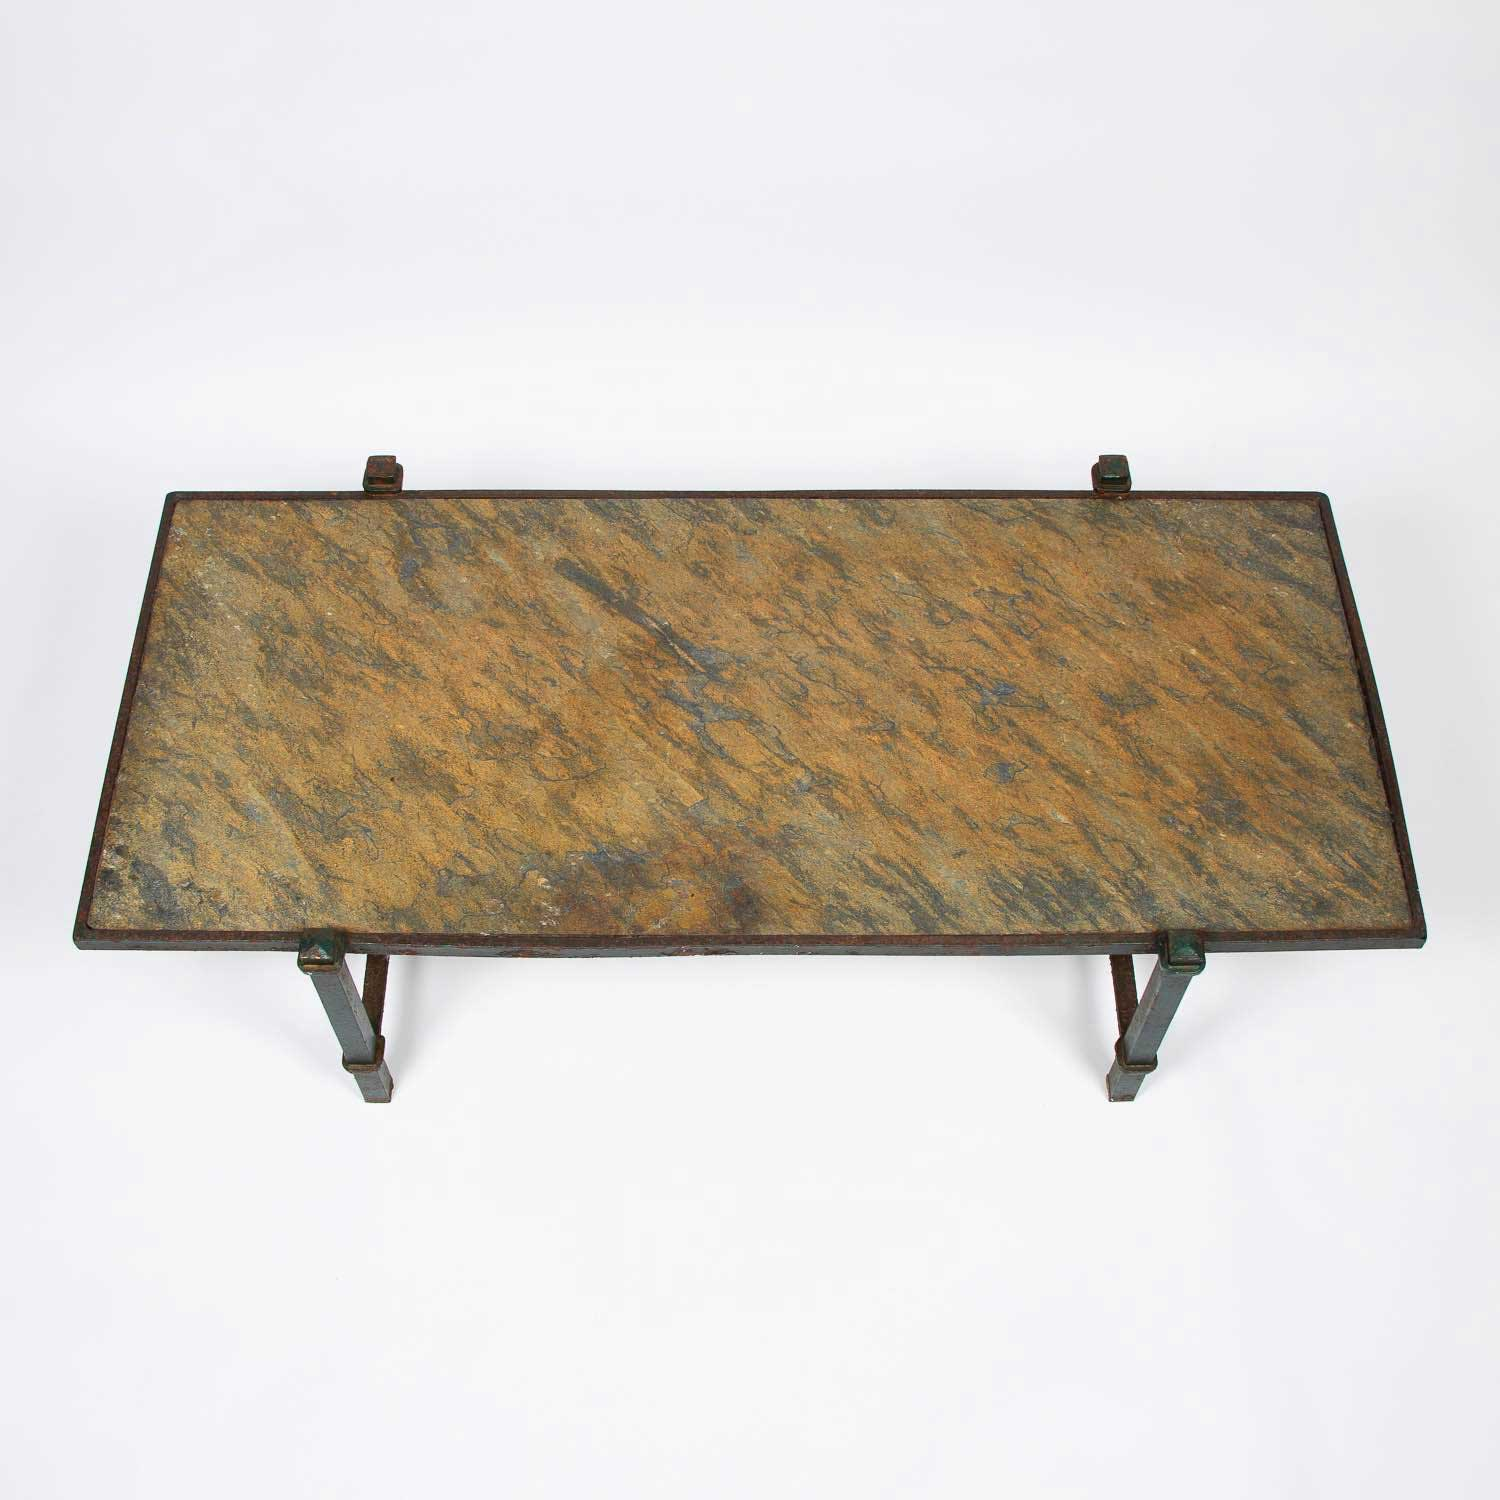 Green Slate table